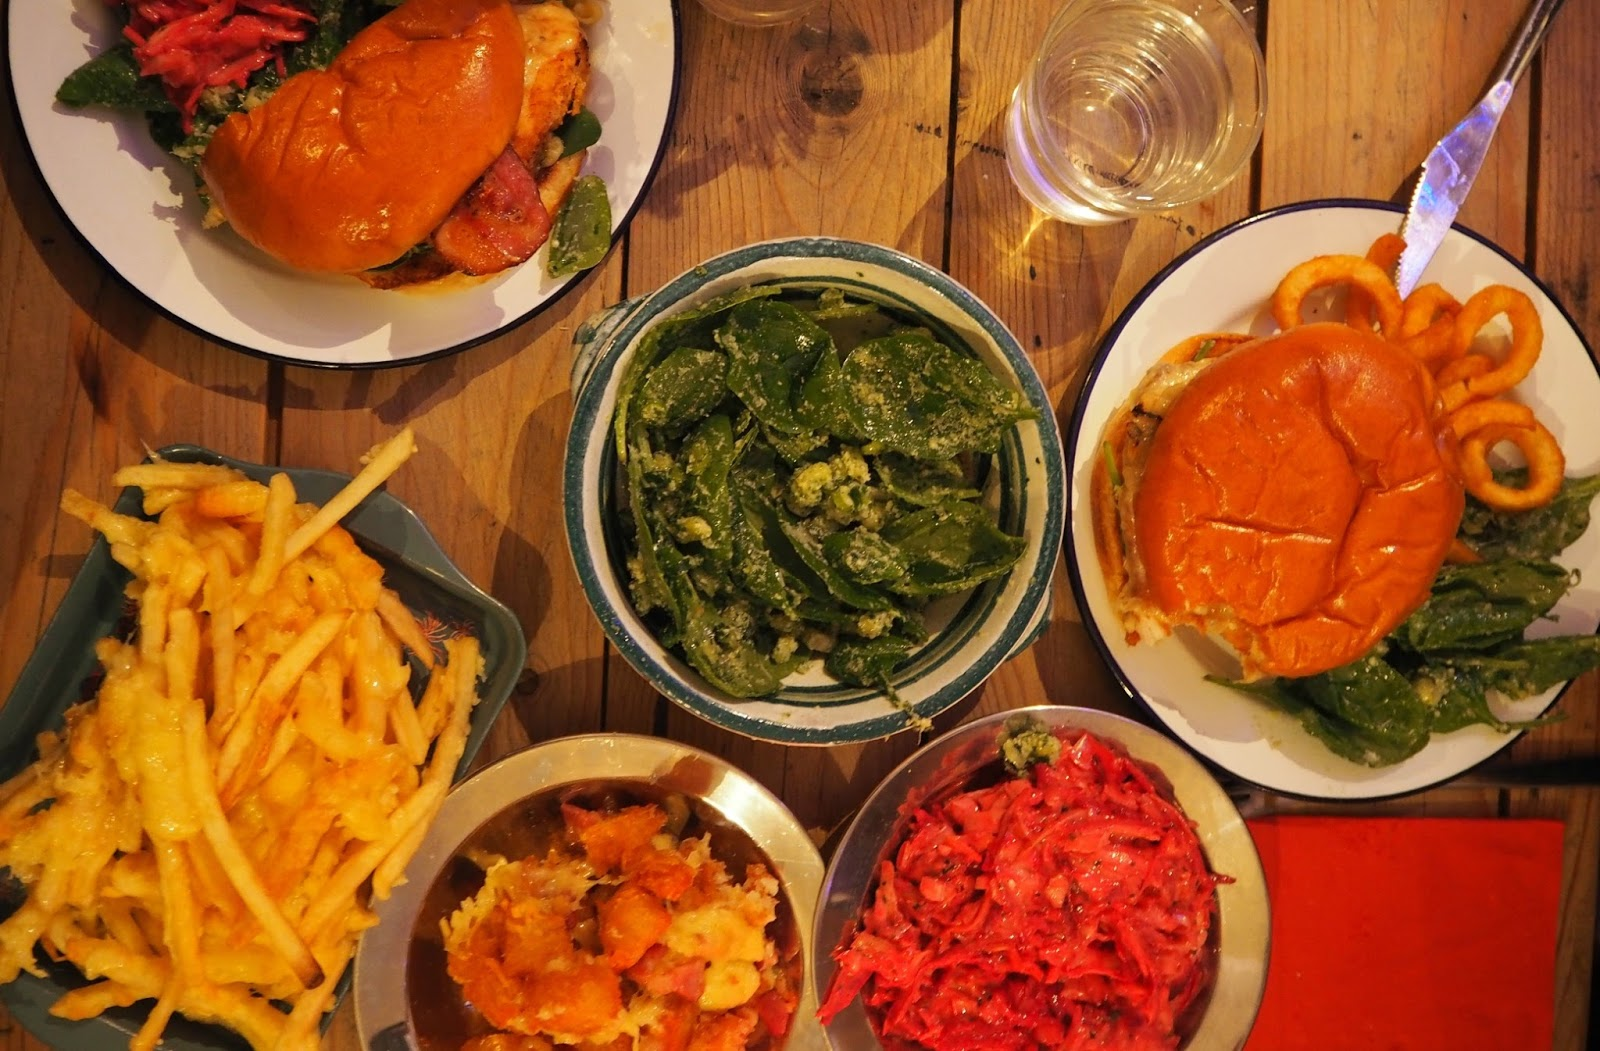 Birdseye view of burger and sides